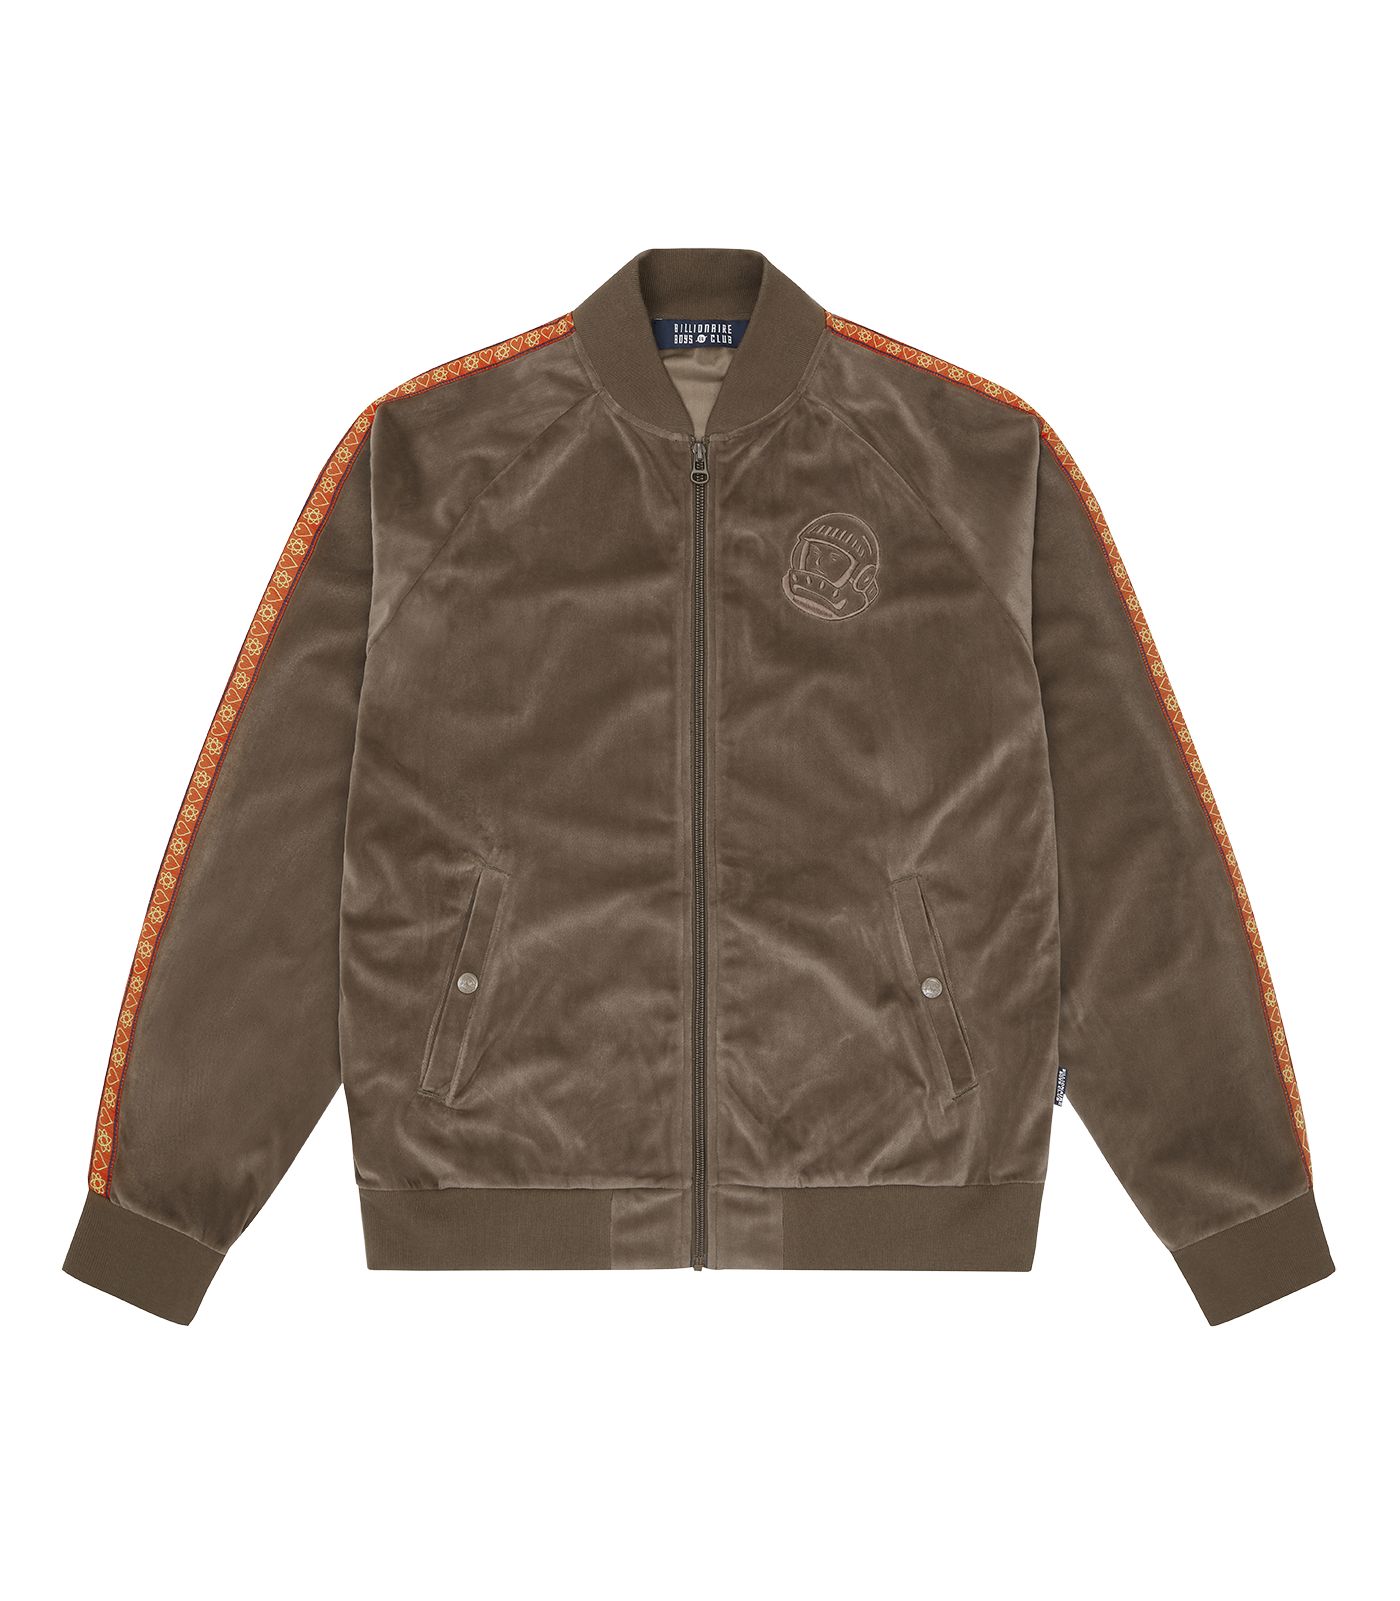 HEART & MIND TAPED TRACK TOP - BROWN